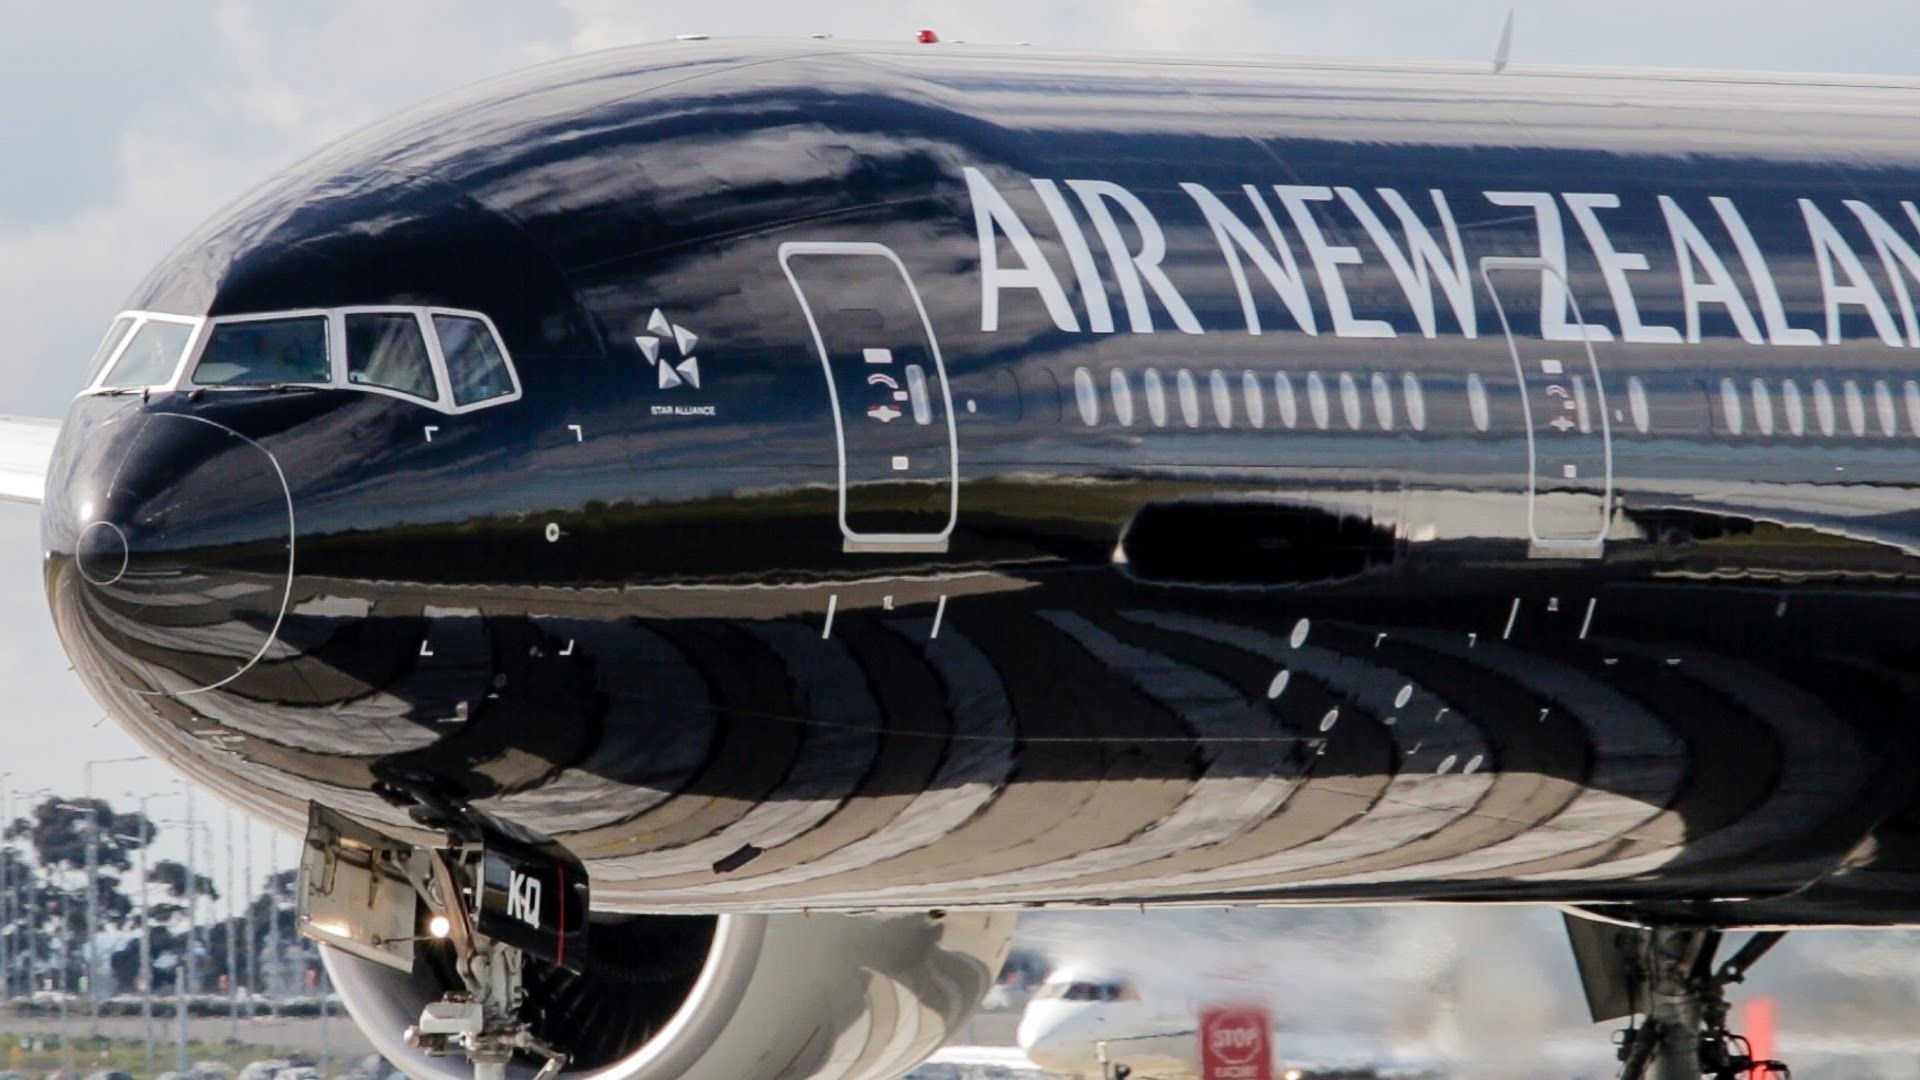 Air New Zealand Boeing 777300ER ALL BLACK LIVERY Takeoff